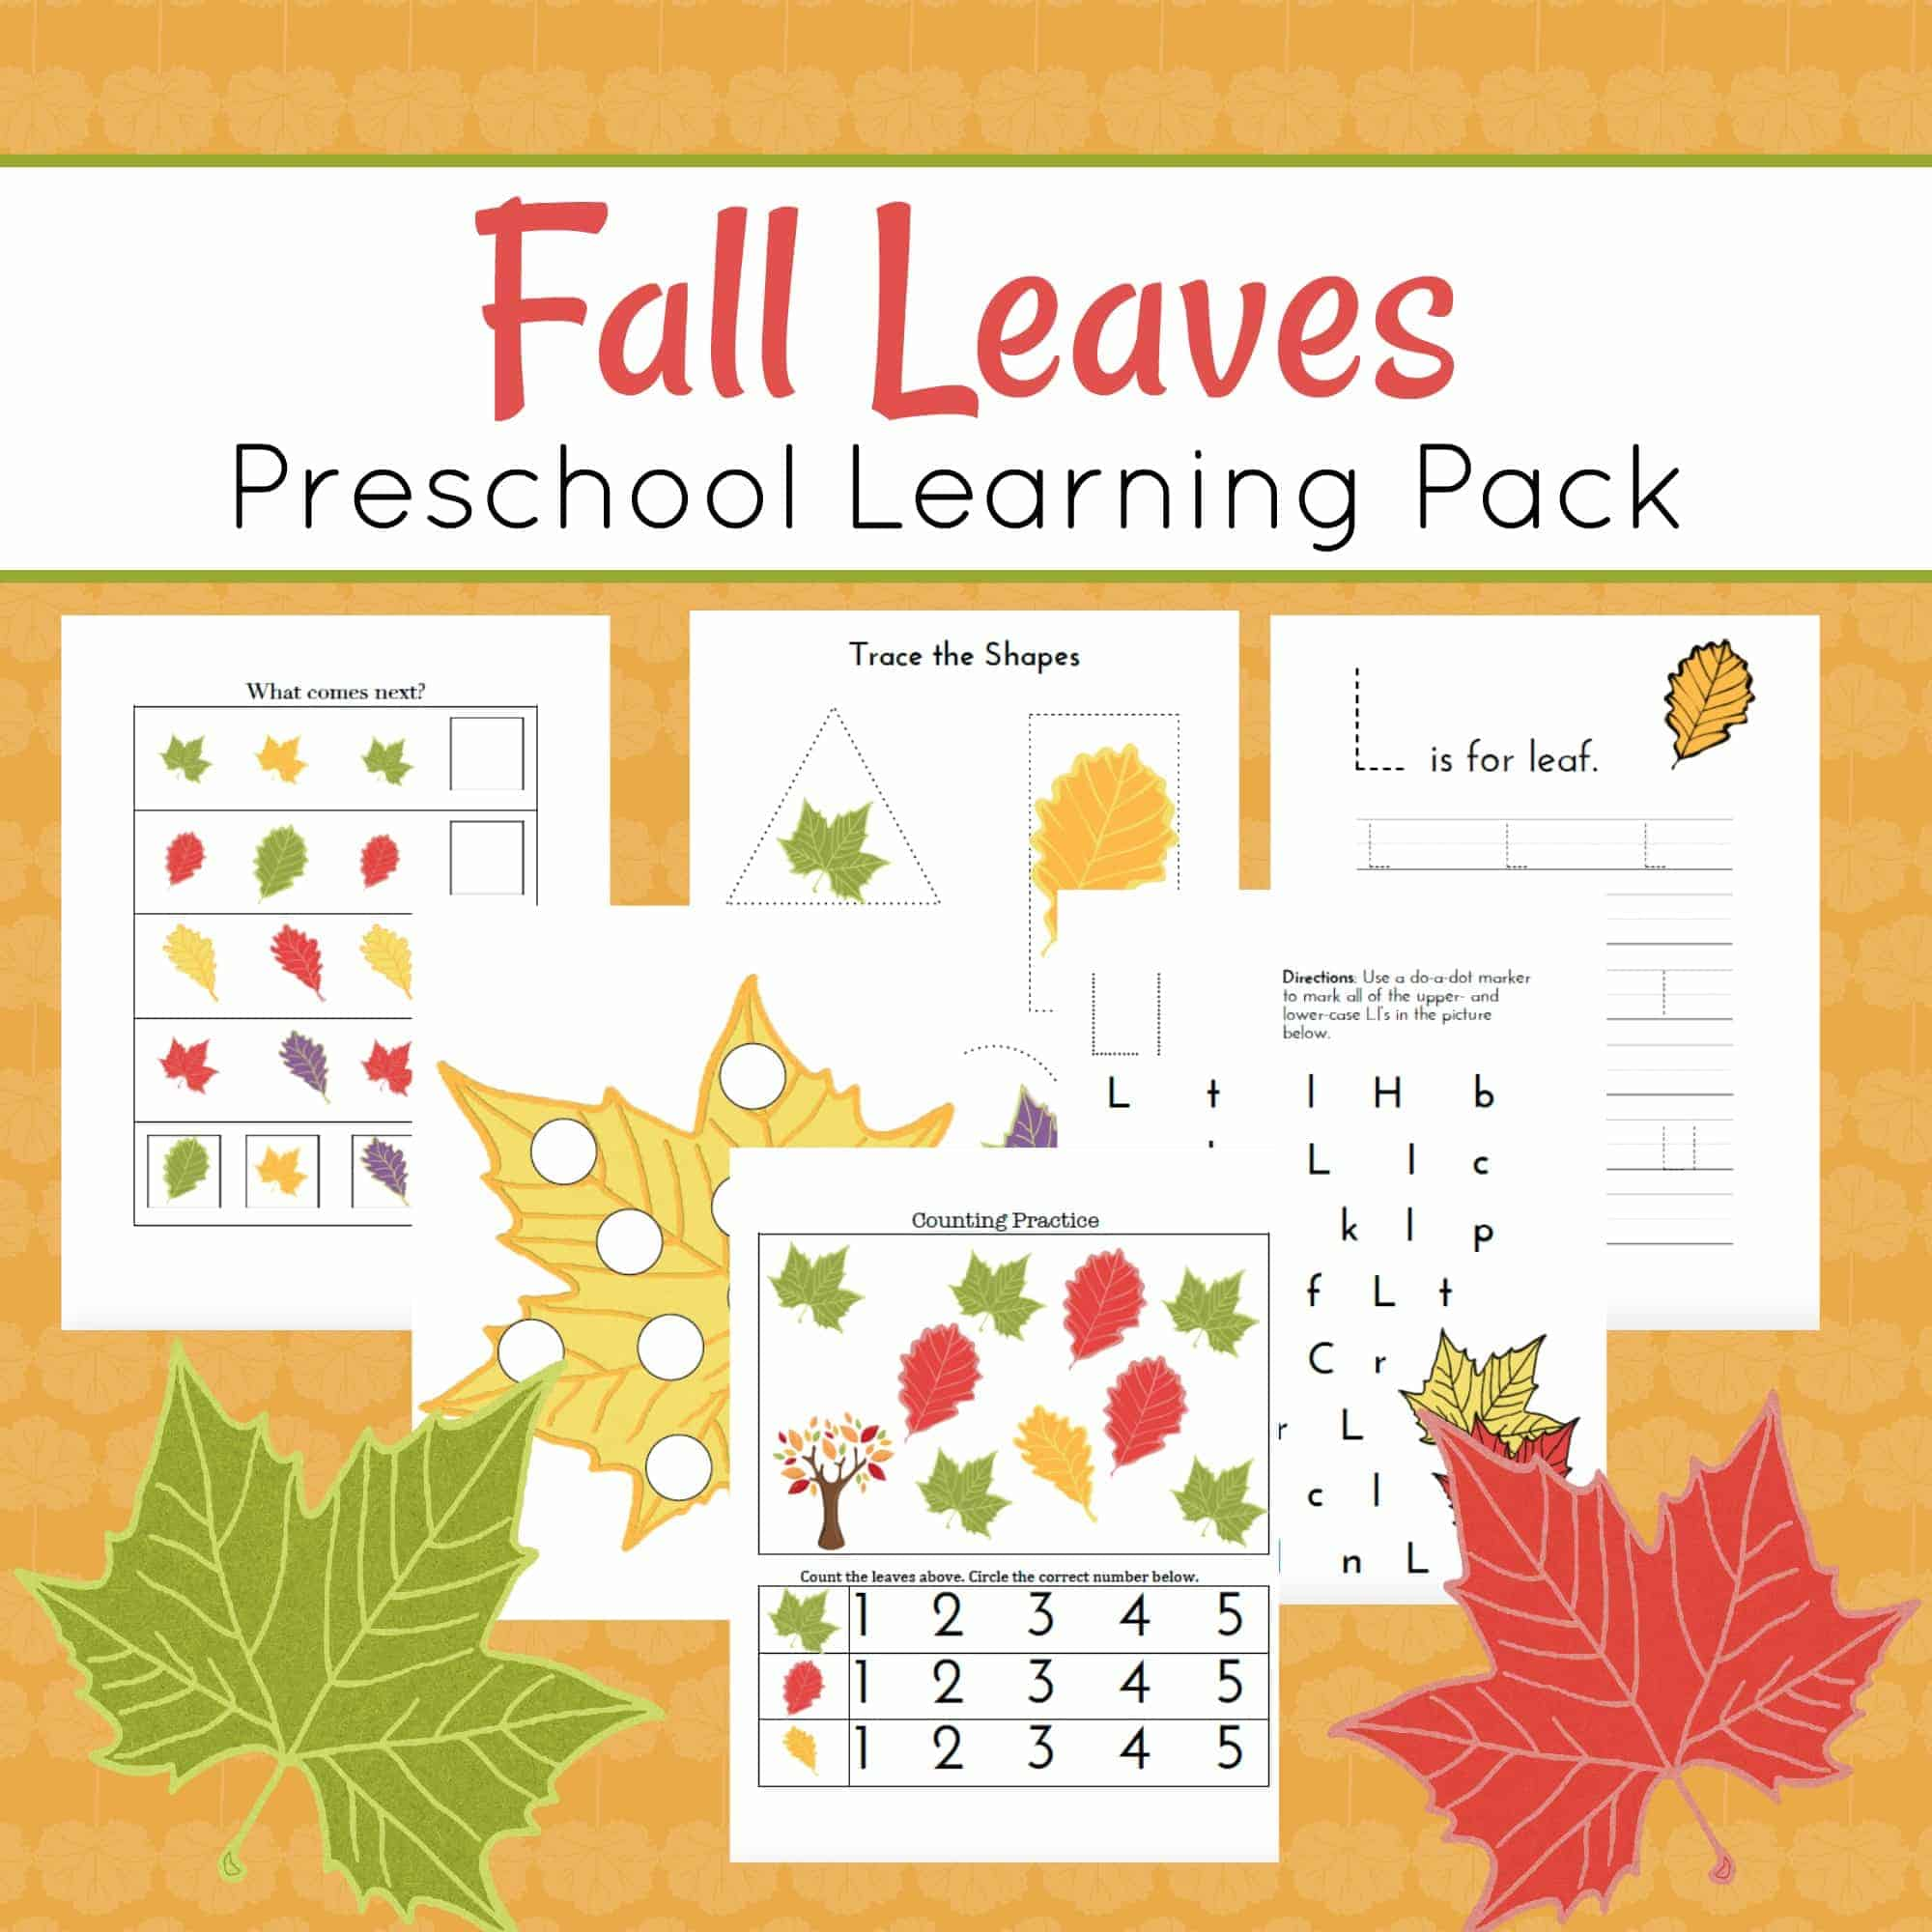 Fabulous Fall Leaves Preschool Printables And Activities